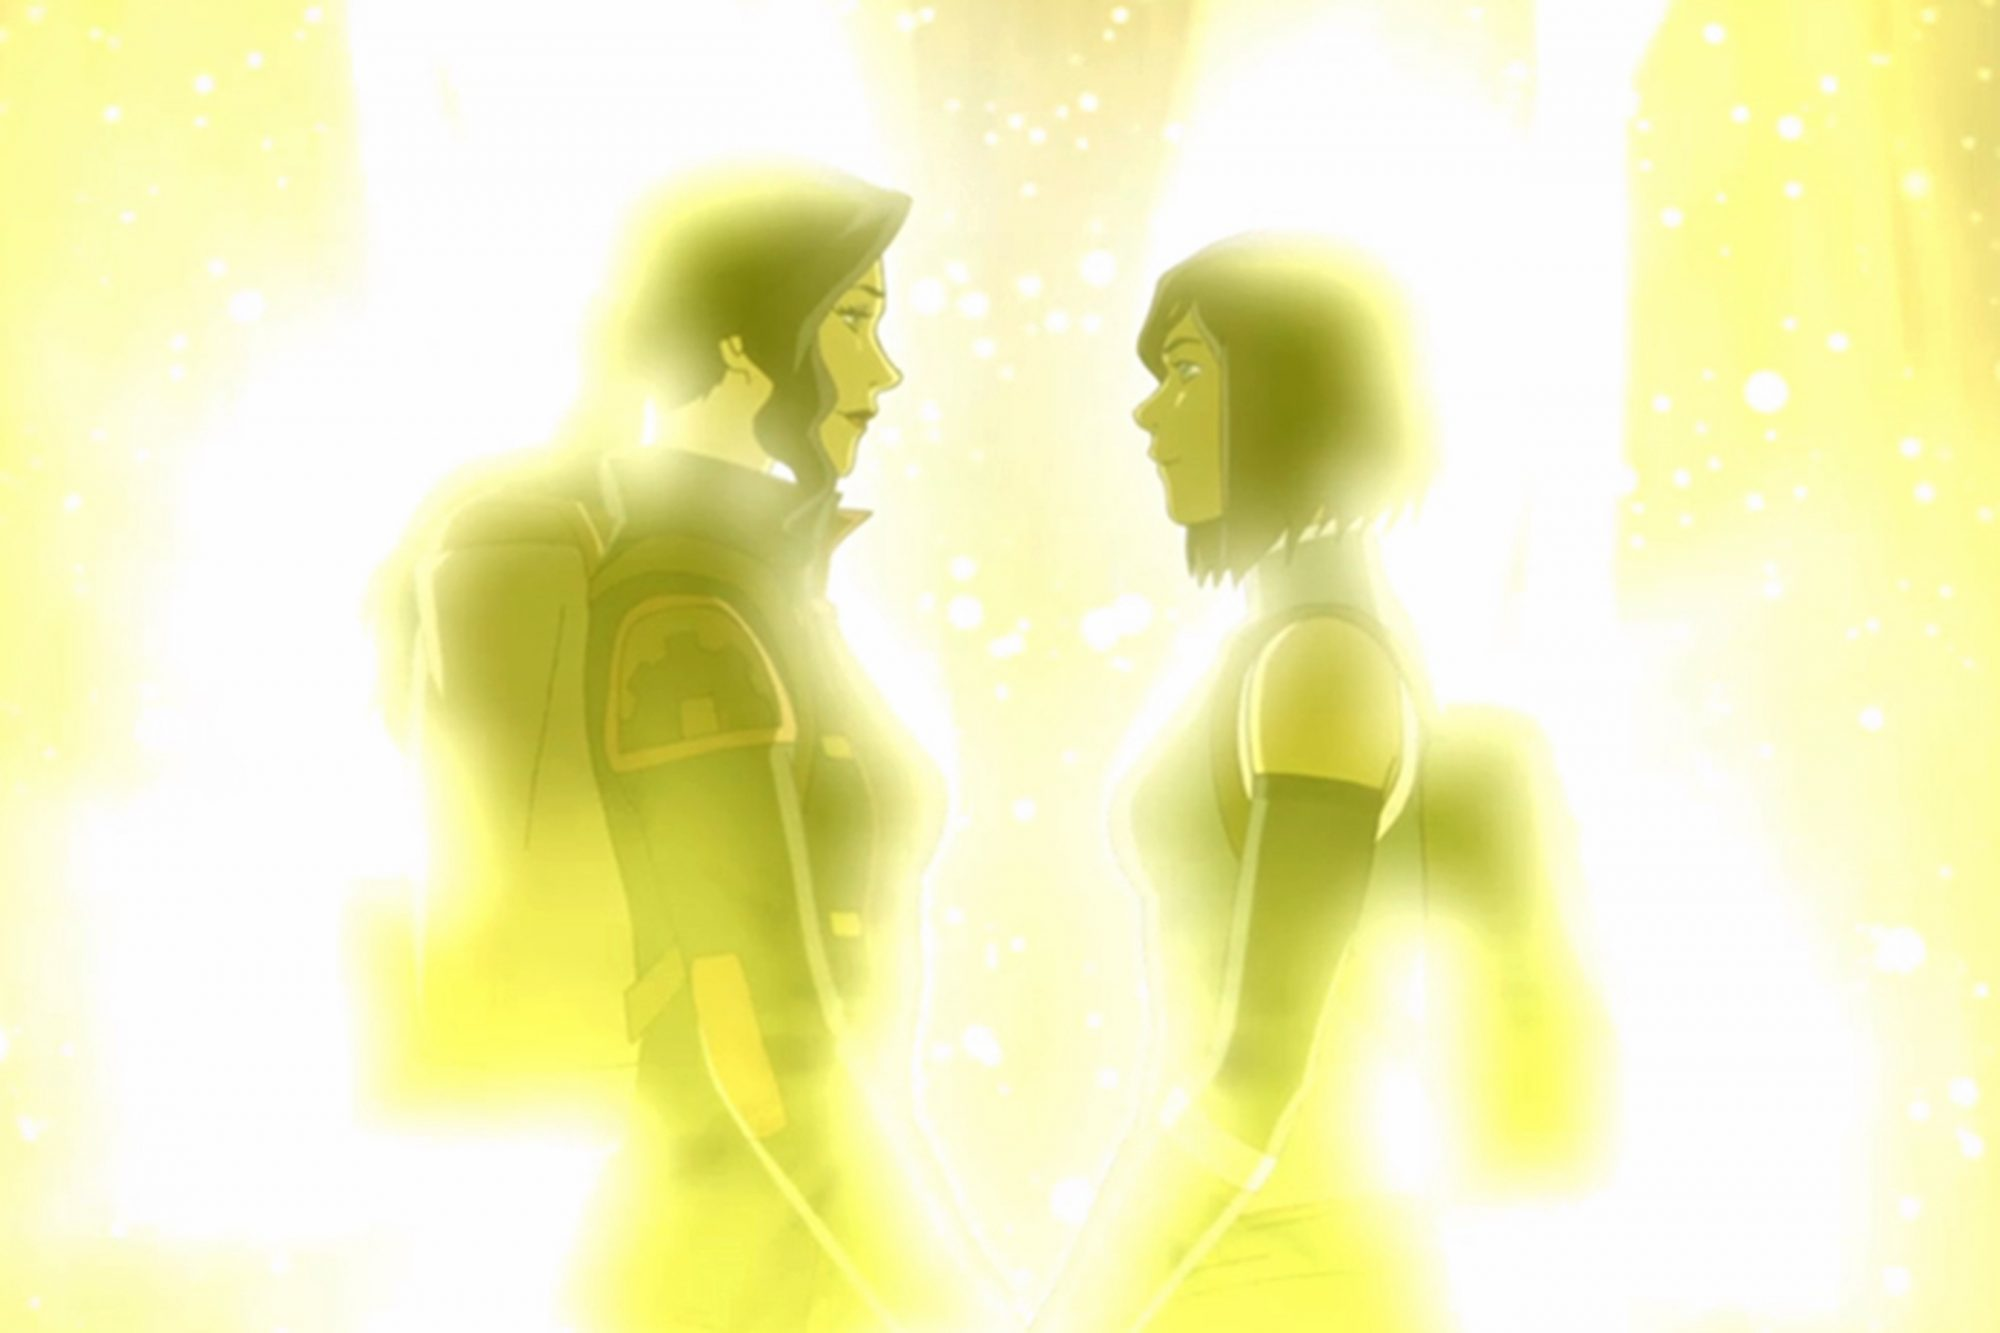 Korra and Asami - Legends of Korra